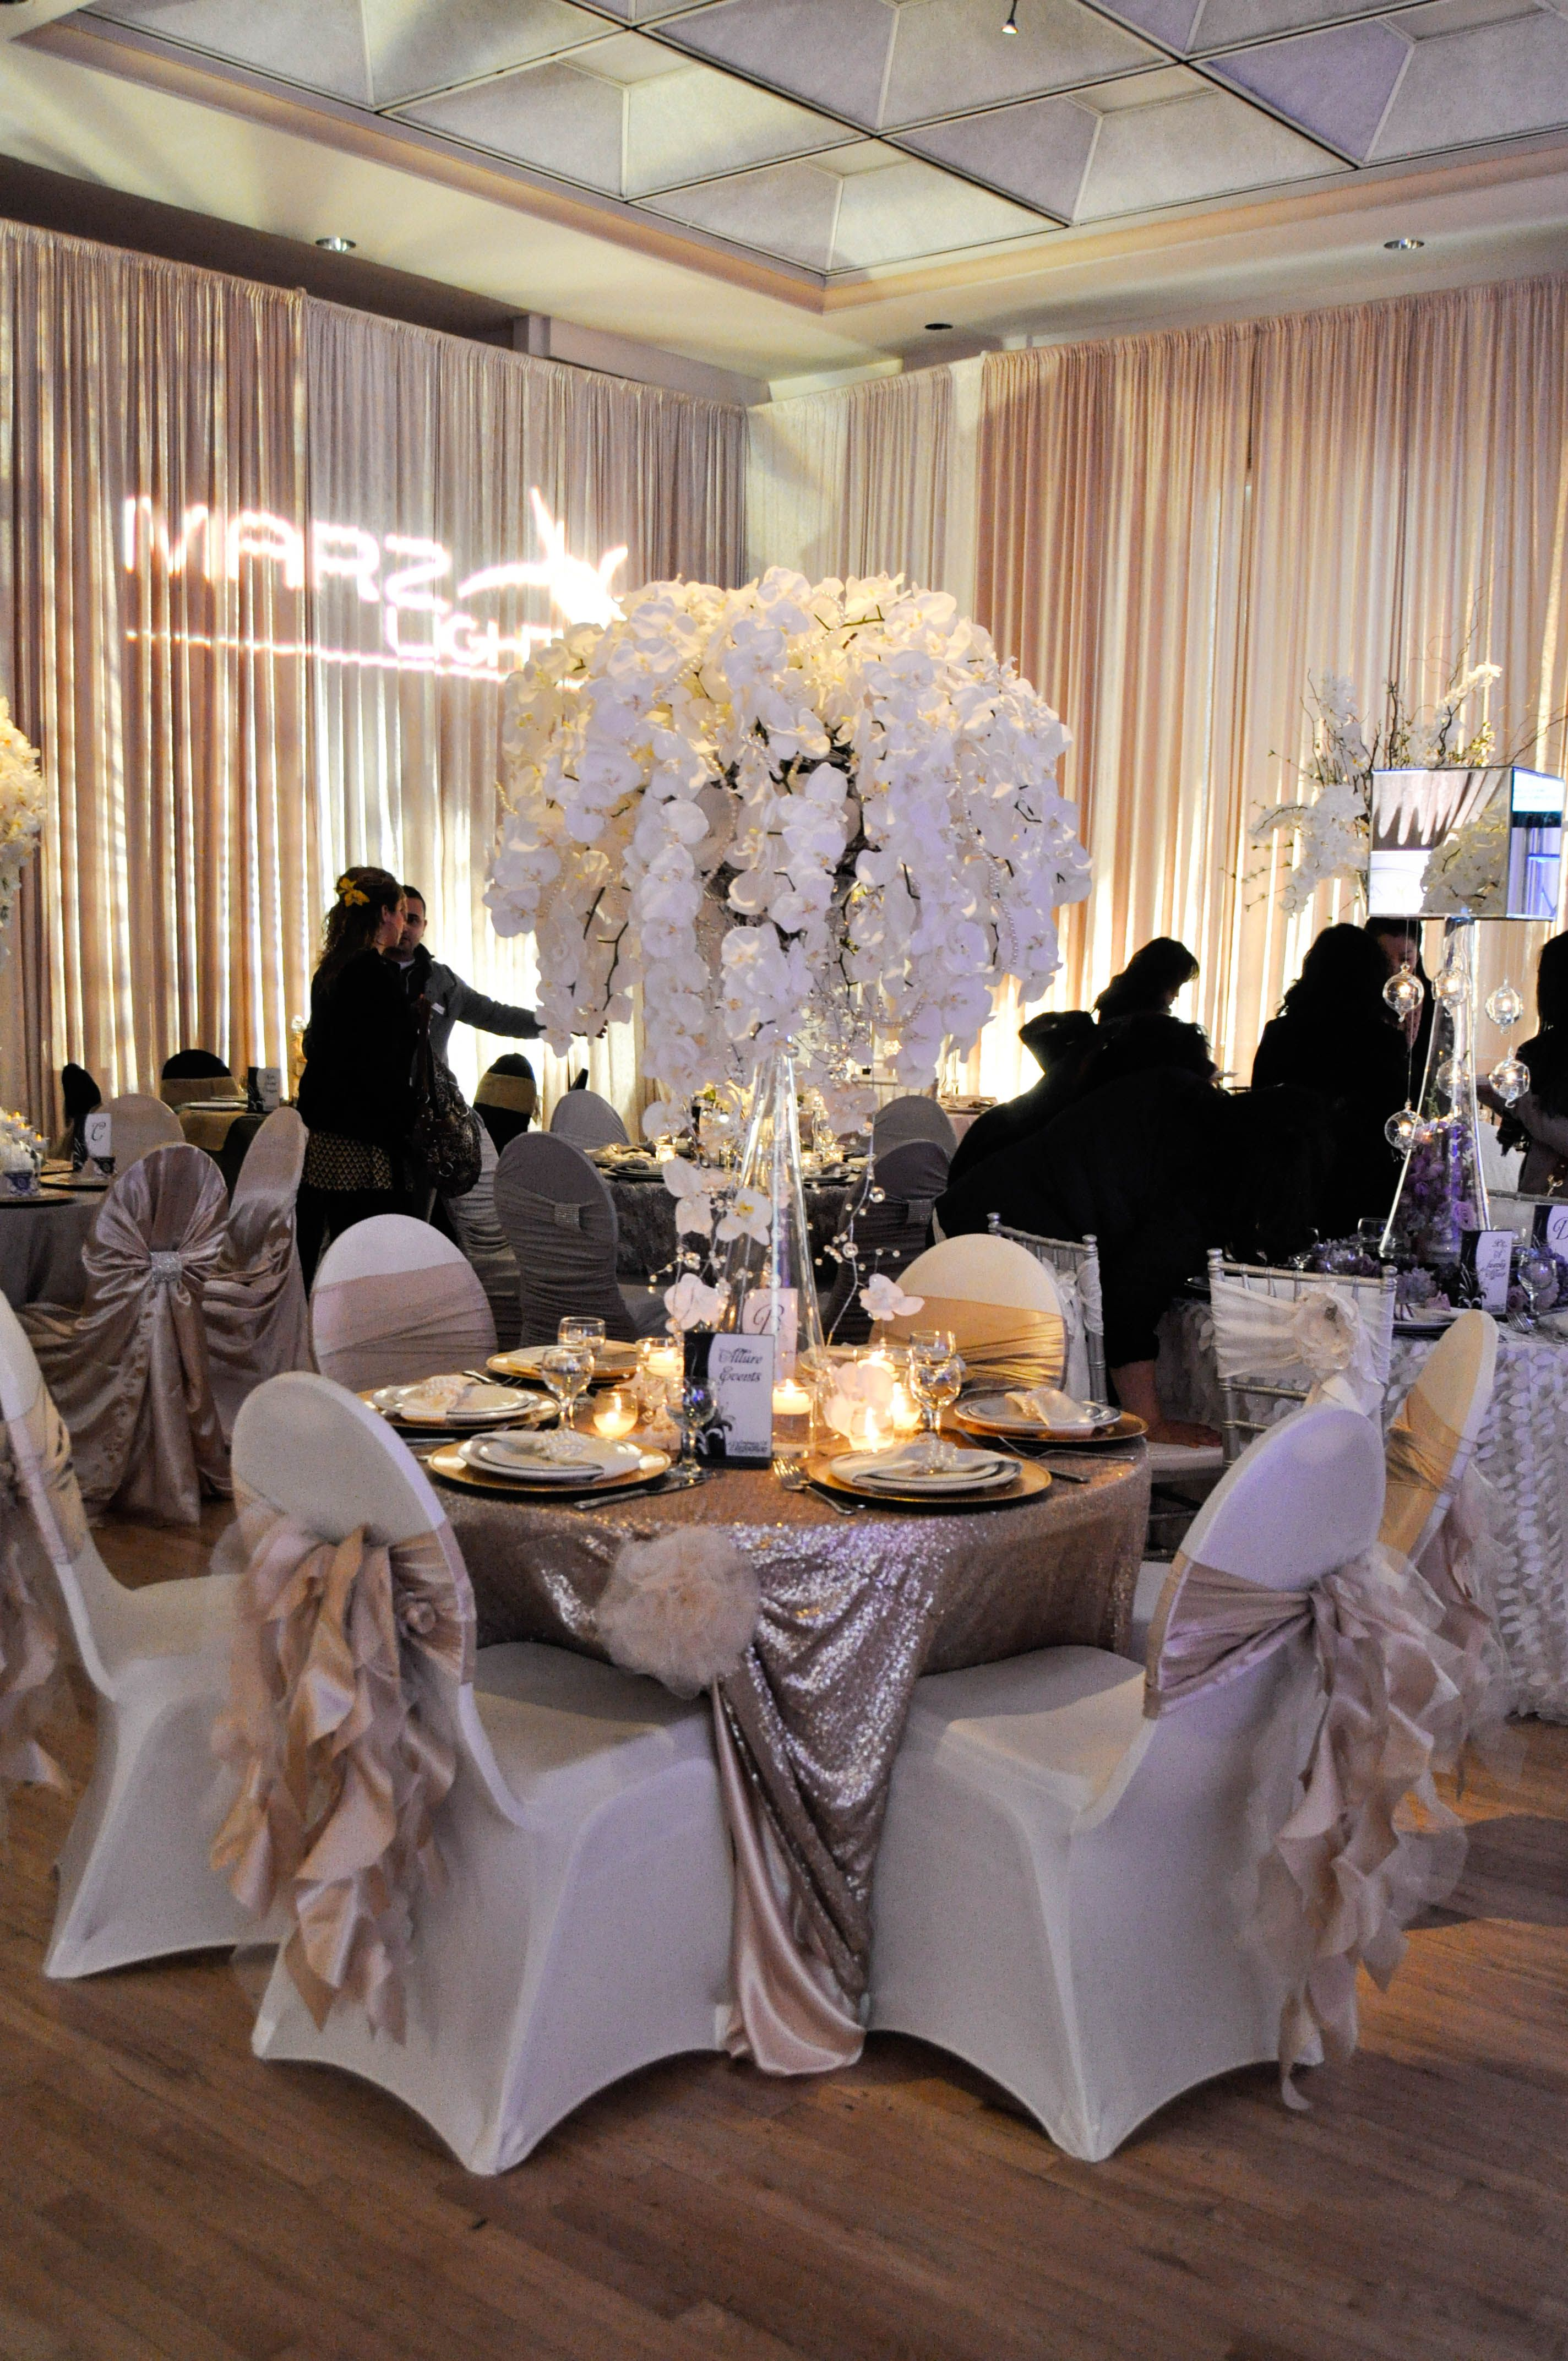 Table Top Decor By Allure Events At The Wedding Extravaganza 2014